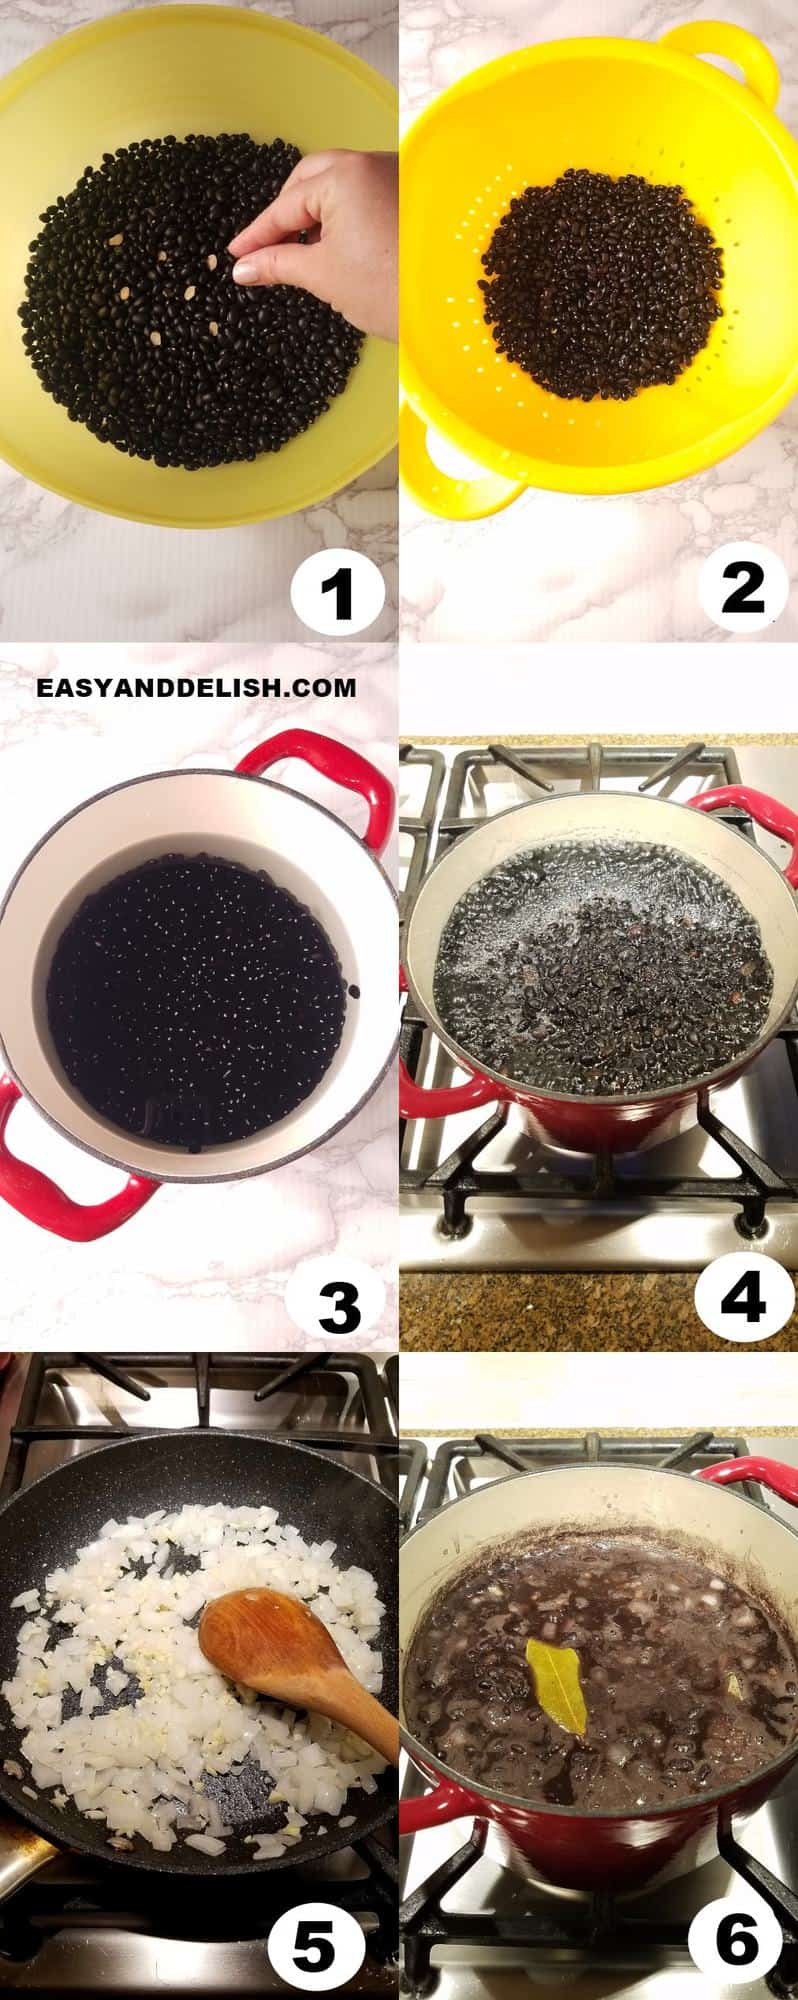 image collage showing how to make black beans in 6 steps